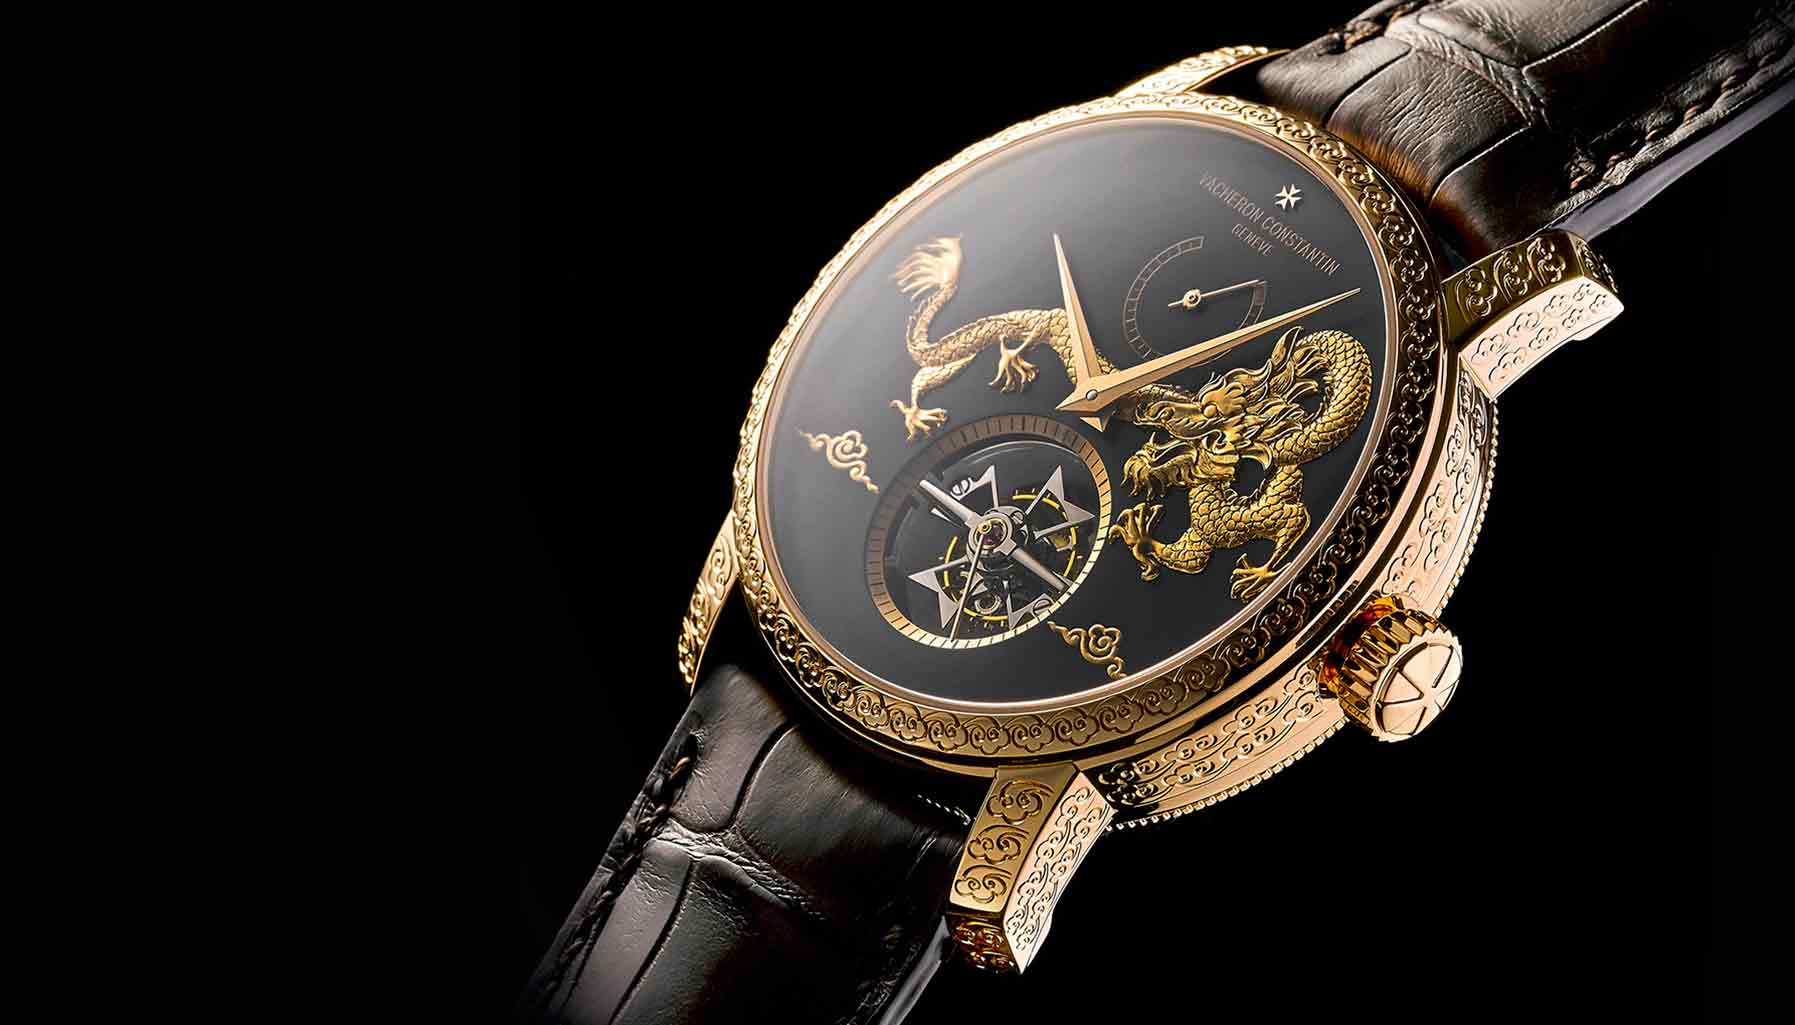 Vacheron Constantin Traditionnelle 14-Day Tourbillon Dragon